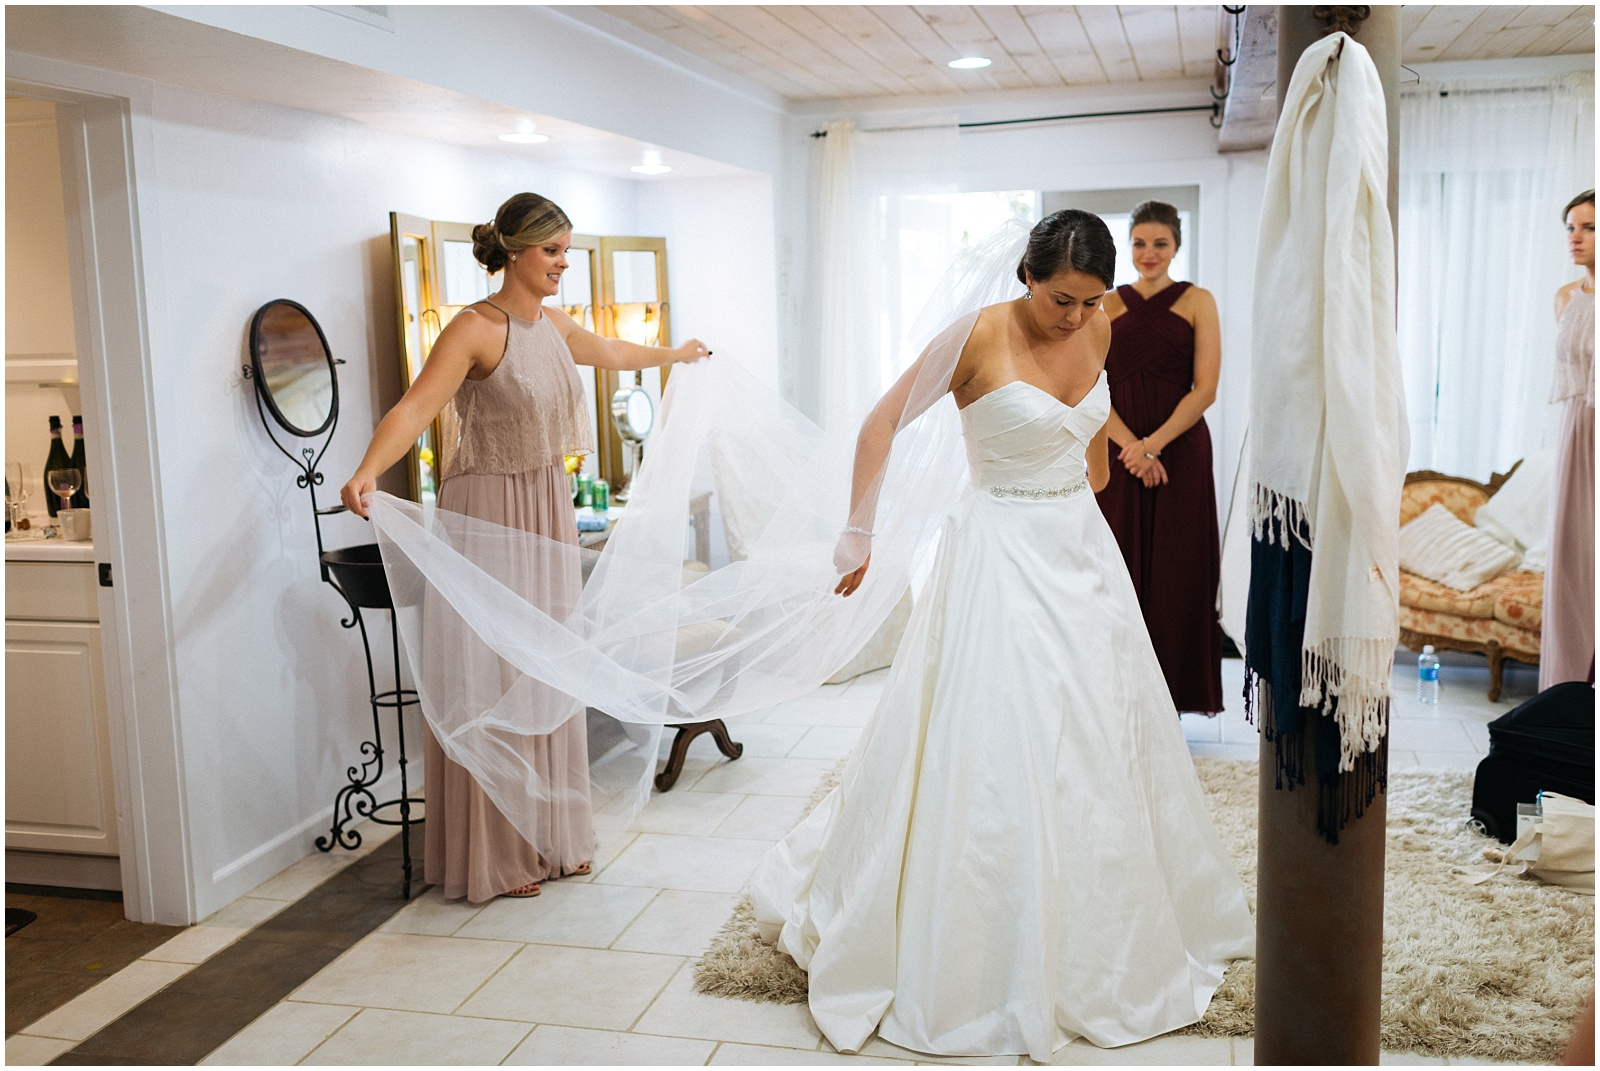 Fluffing gown and veil